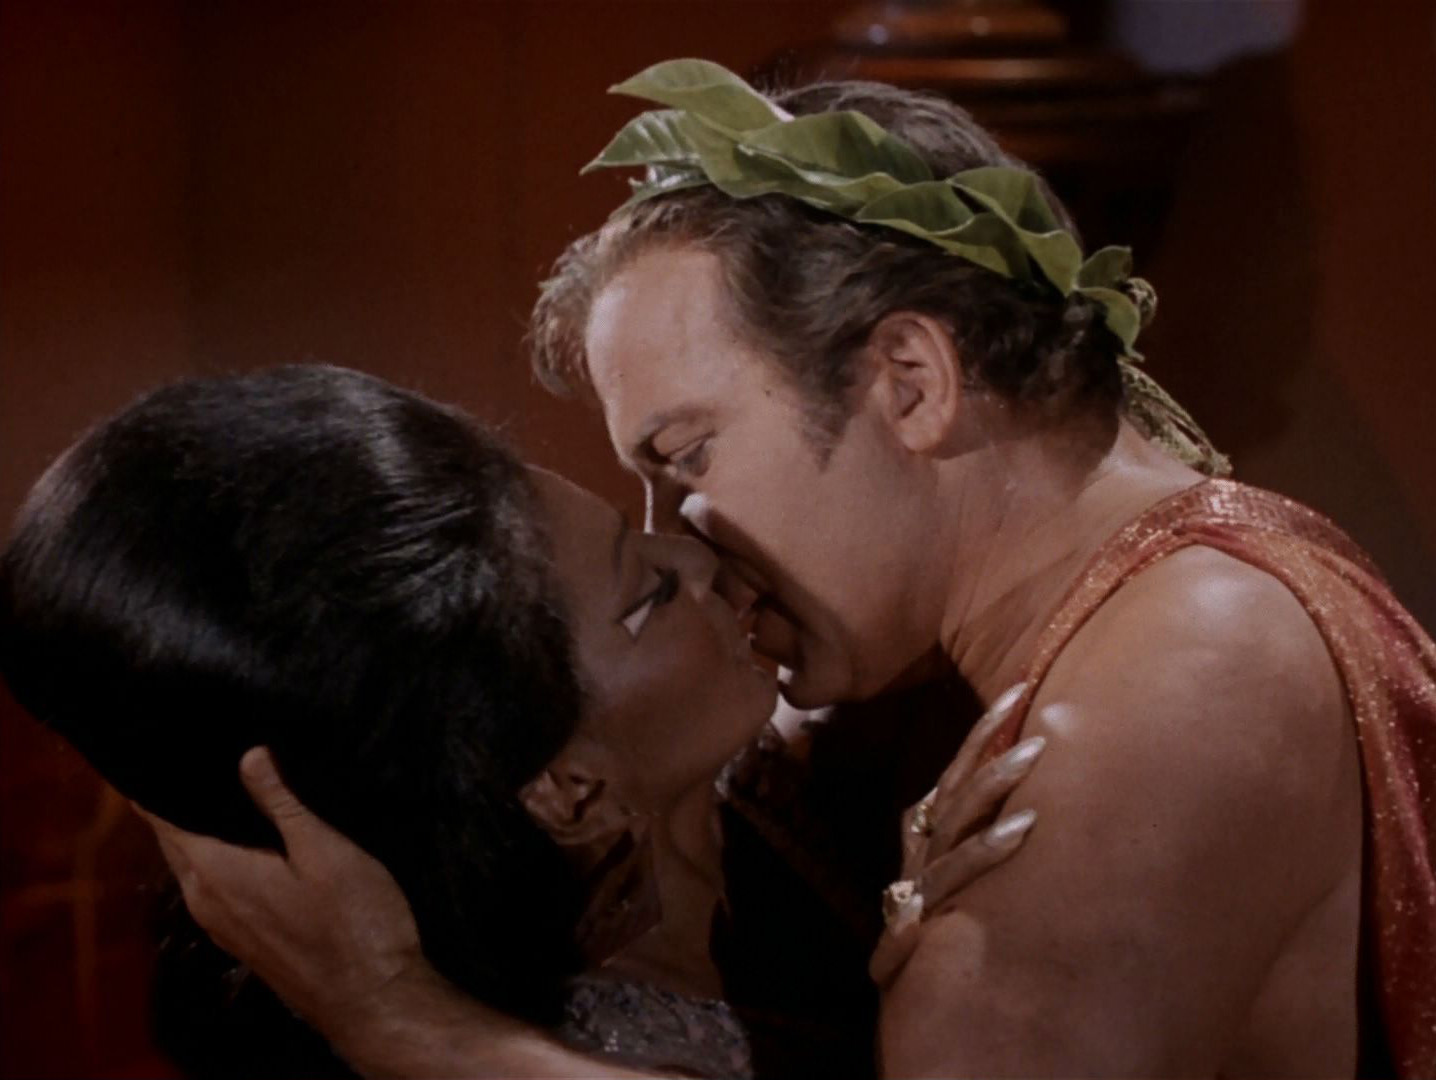 Star Trek featured an episode with an interracial kiss at the height of the civil rights movement.